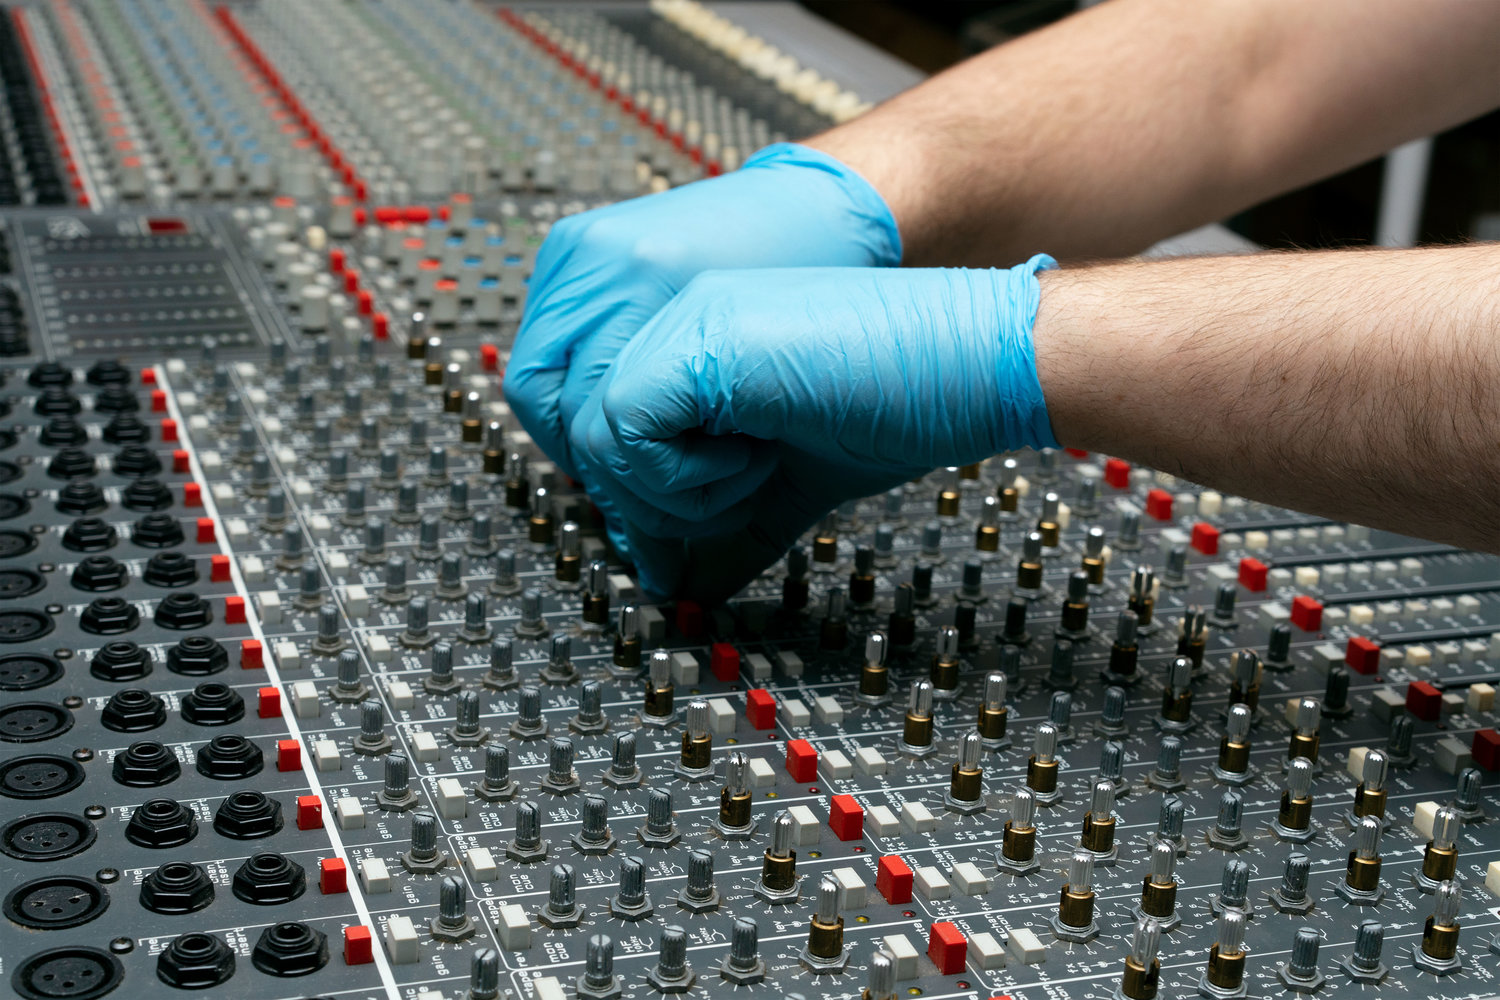 Allen & Heath GS-3: Cleaning the Knobs on a Vintage Console